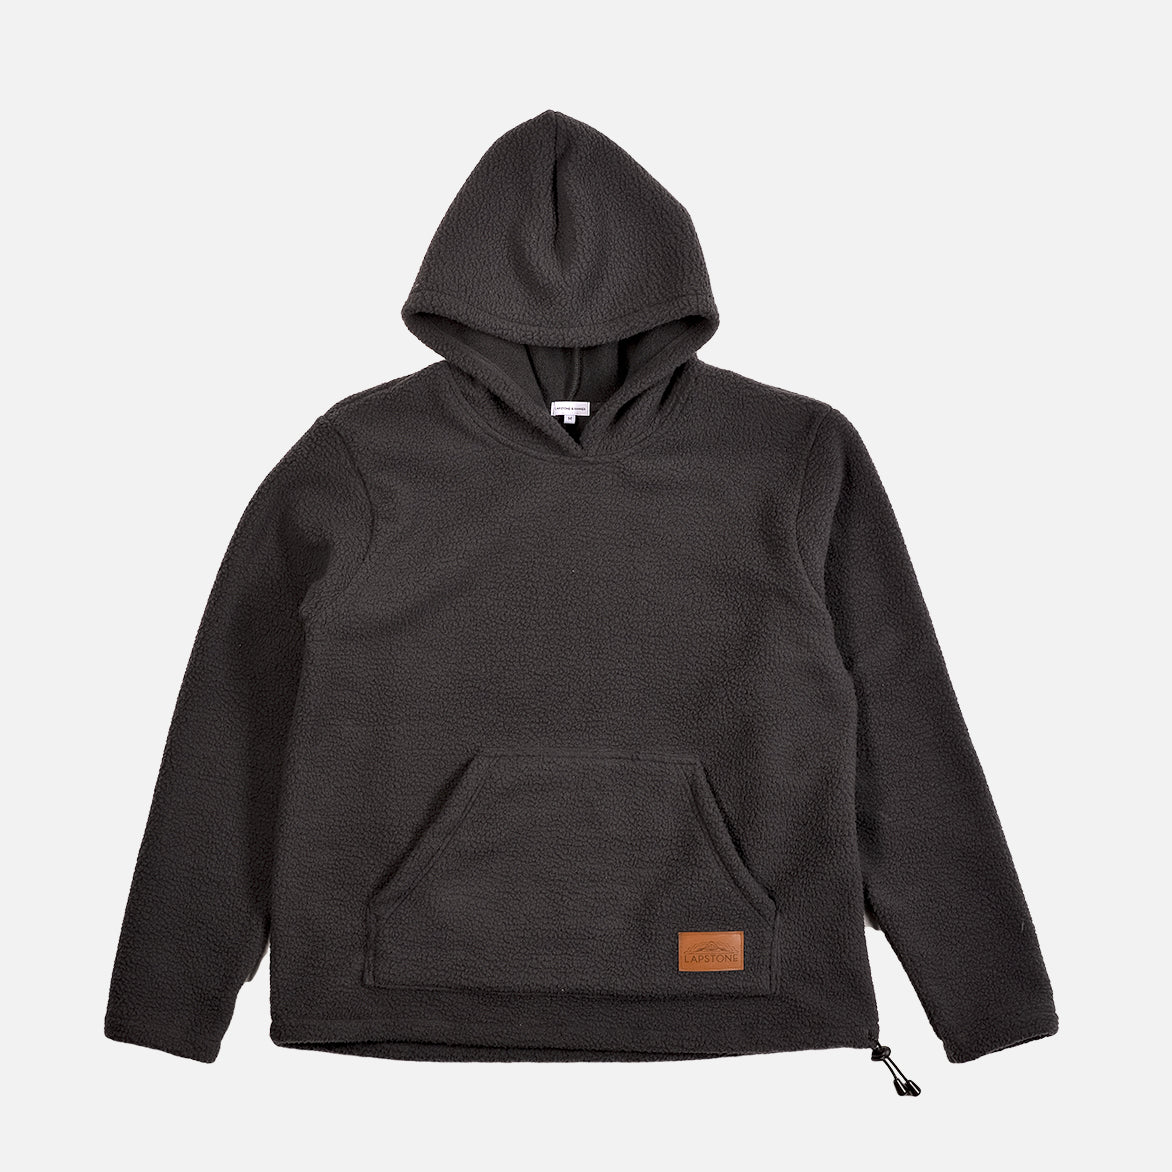 TWO RIVERS SHERPA HOODIE - GRAPHITE